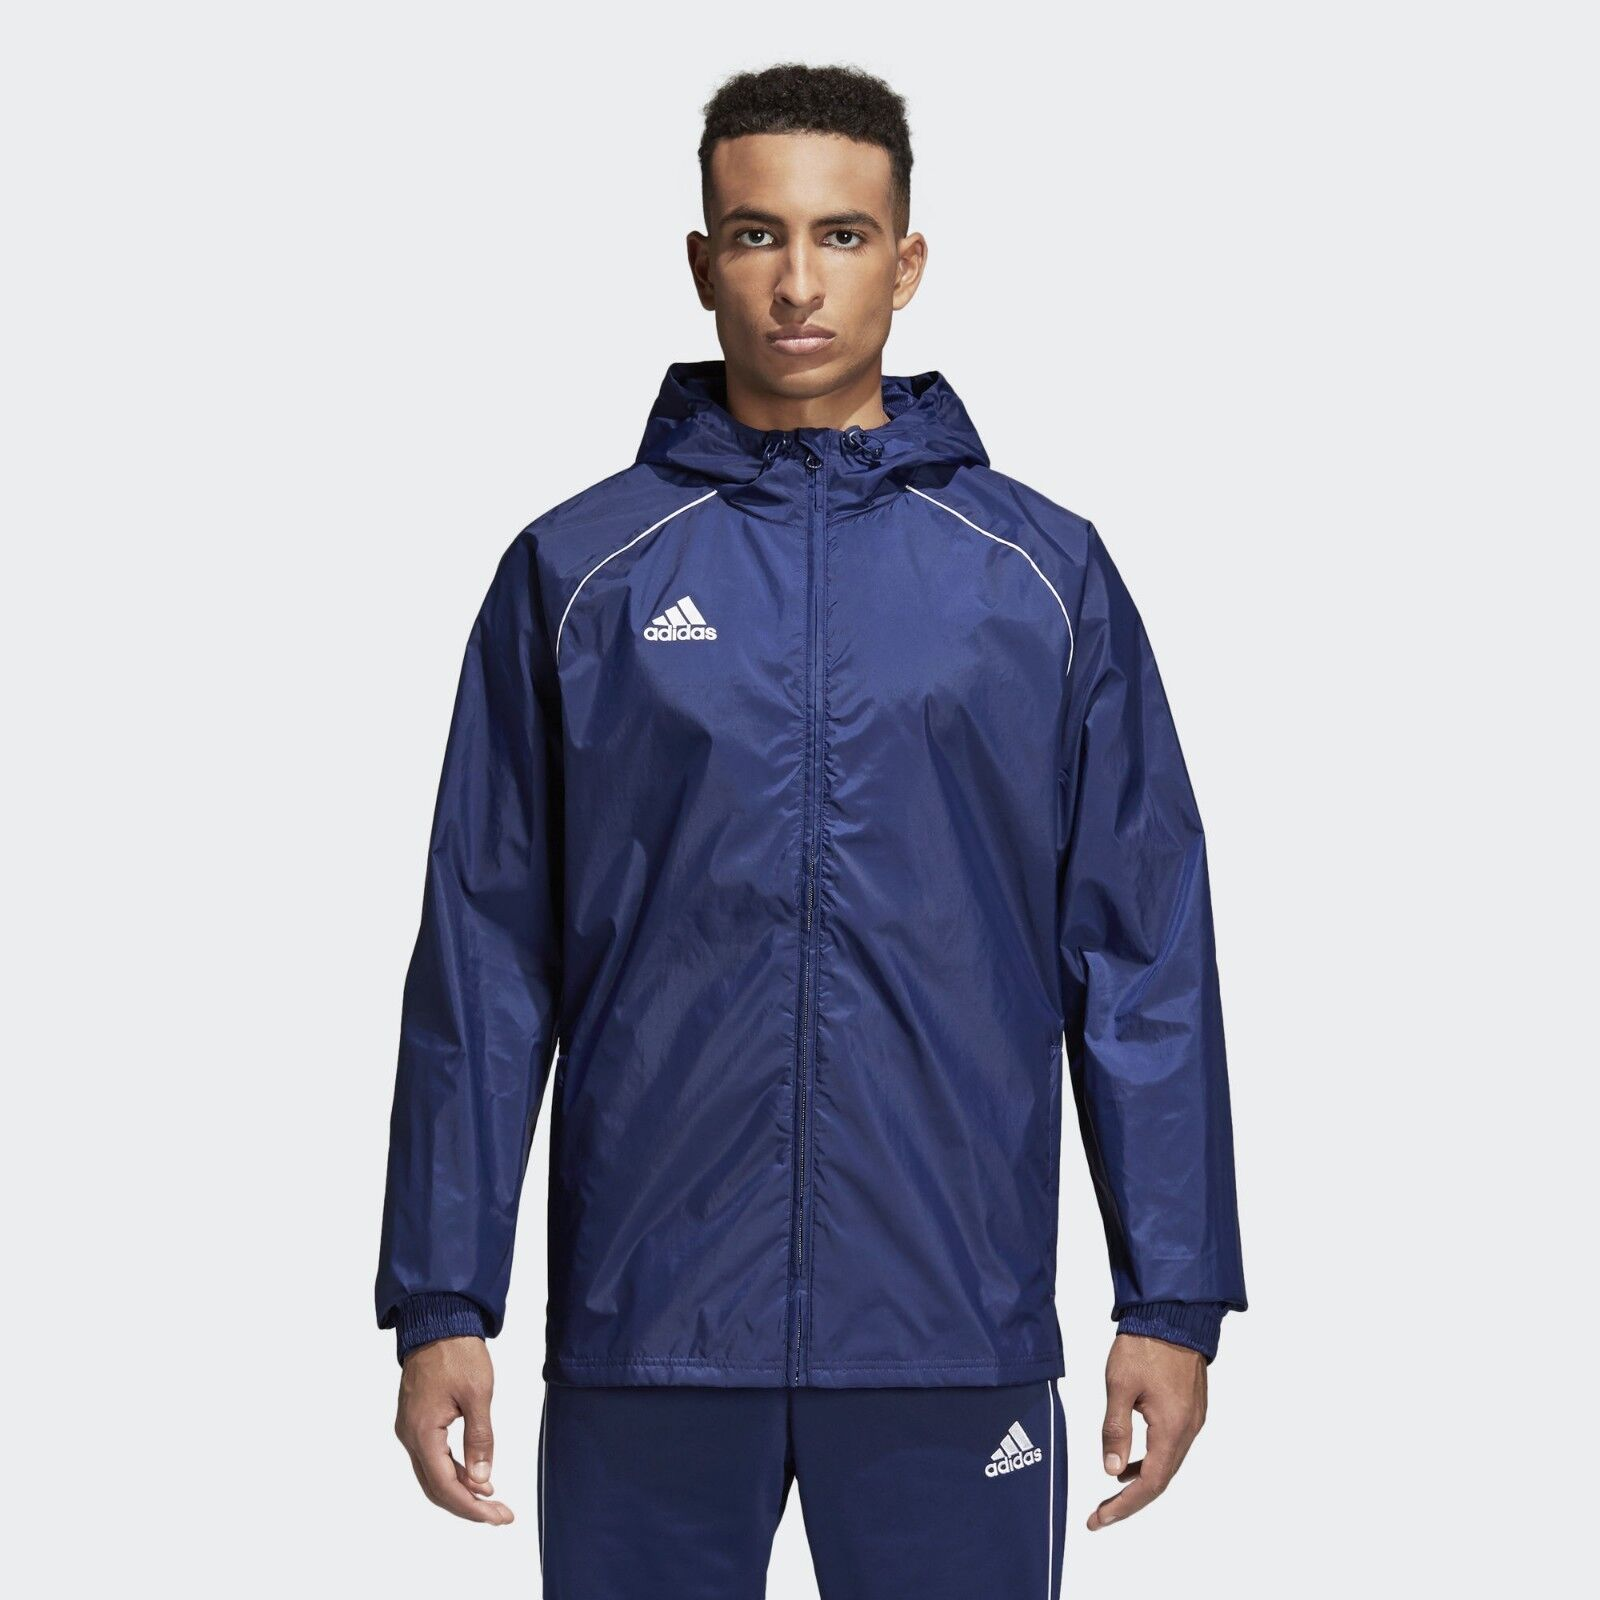 Details about adidas Core 18 Team Rain Jacket Navy Blue Water Resistant Sports Track Coat